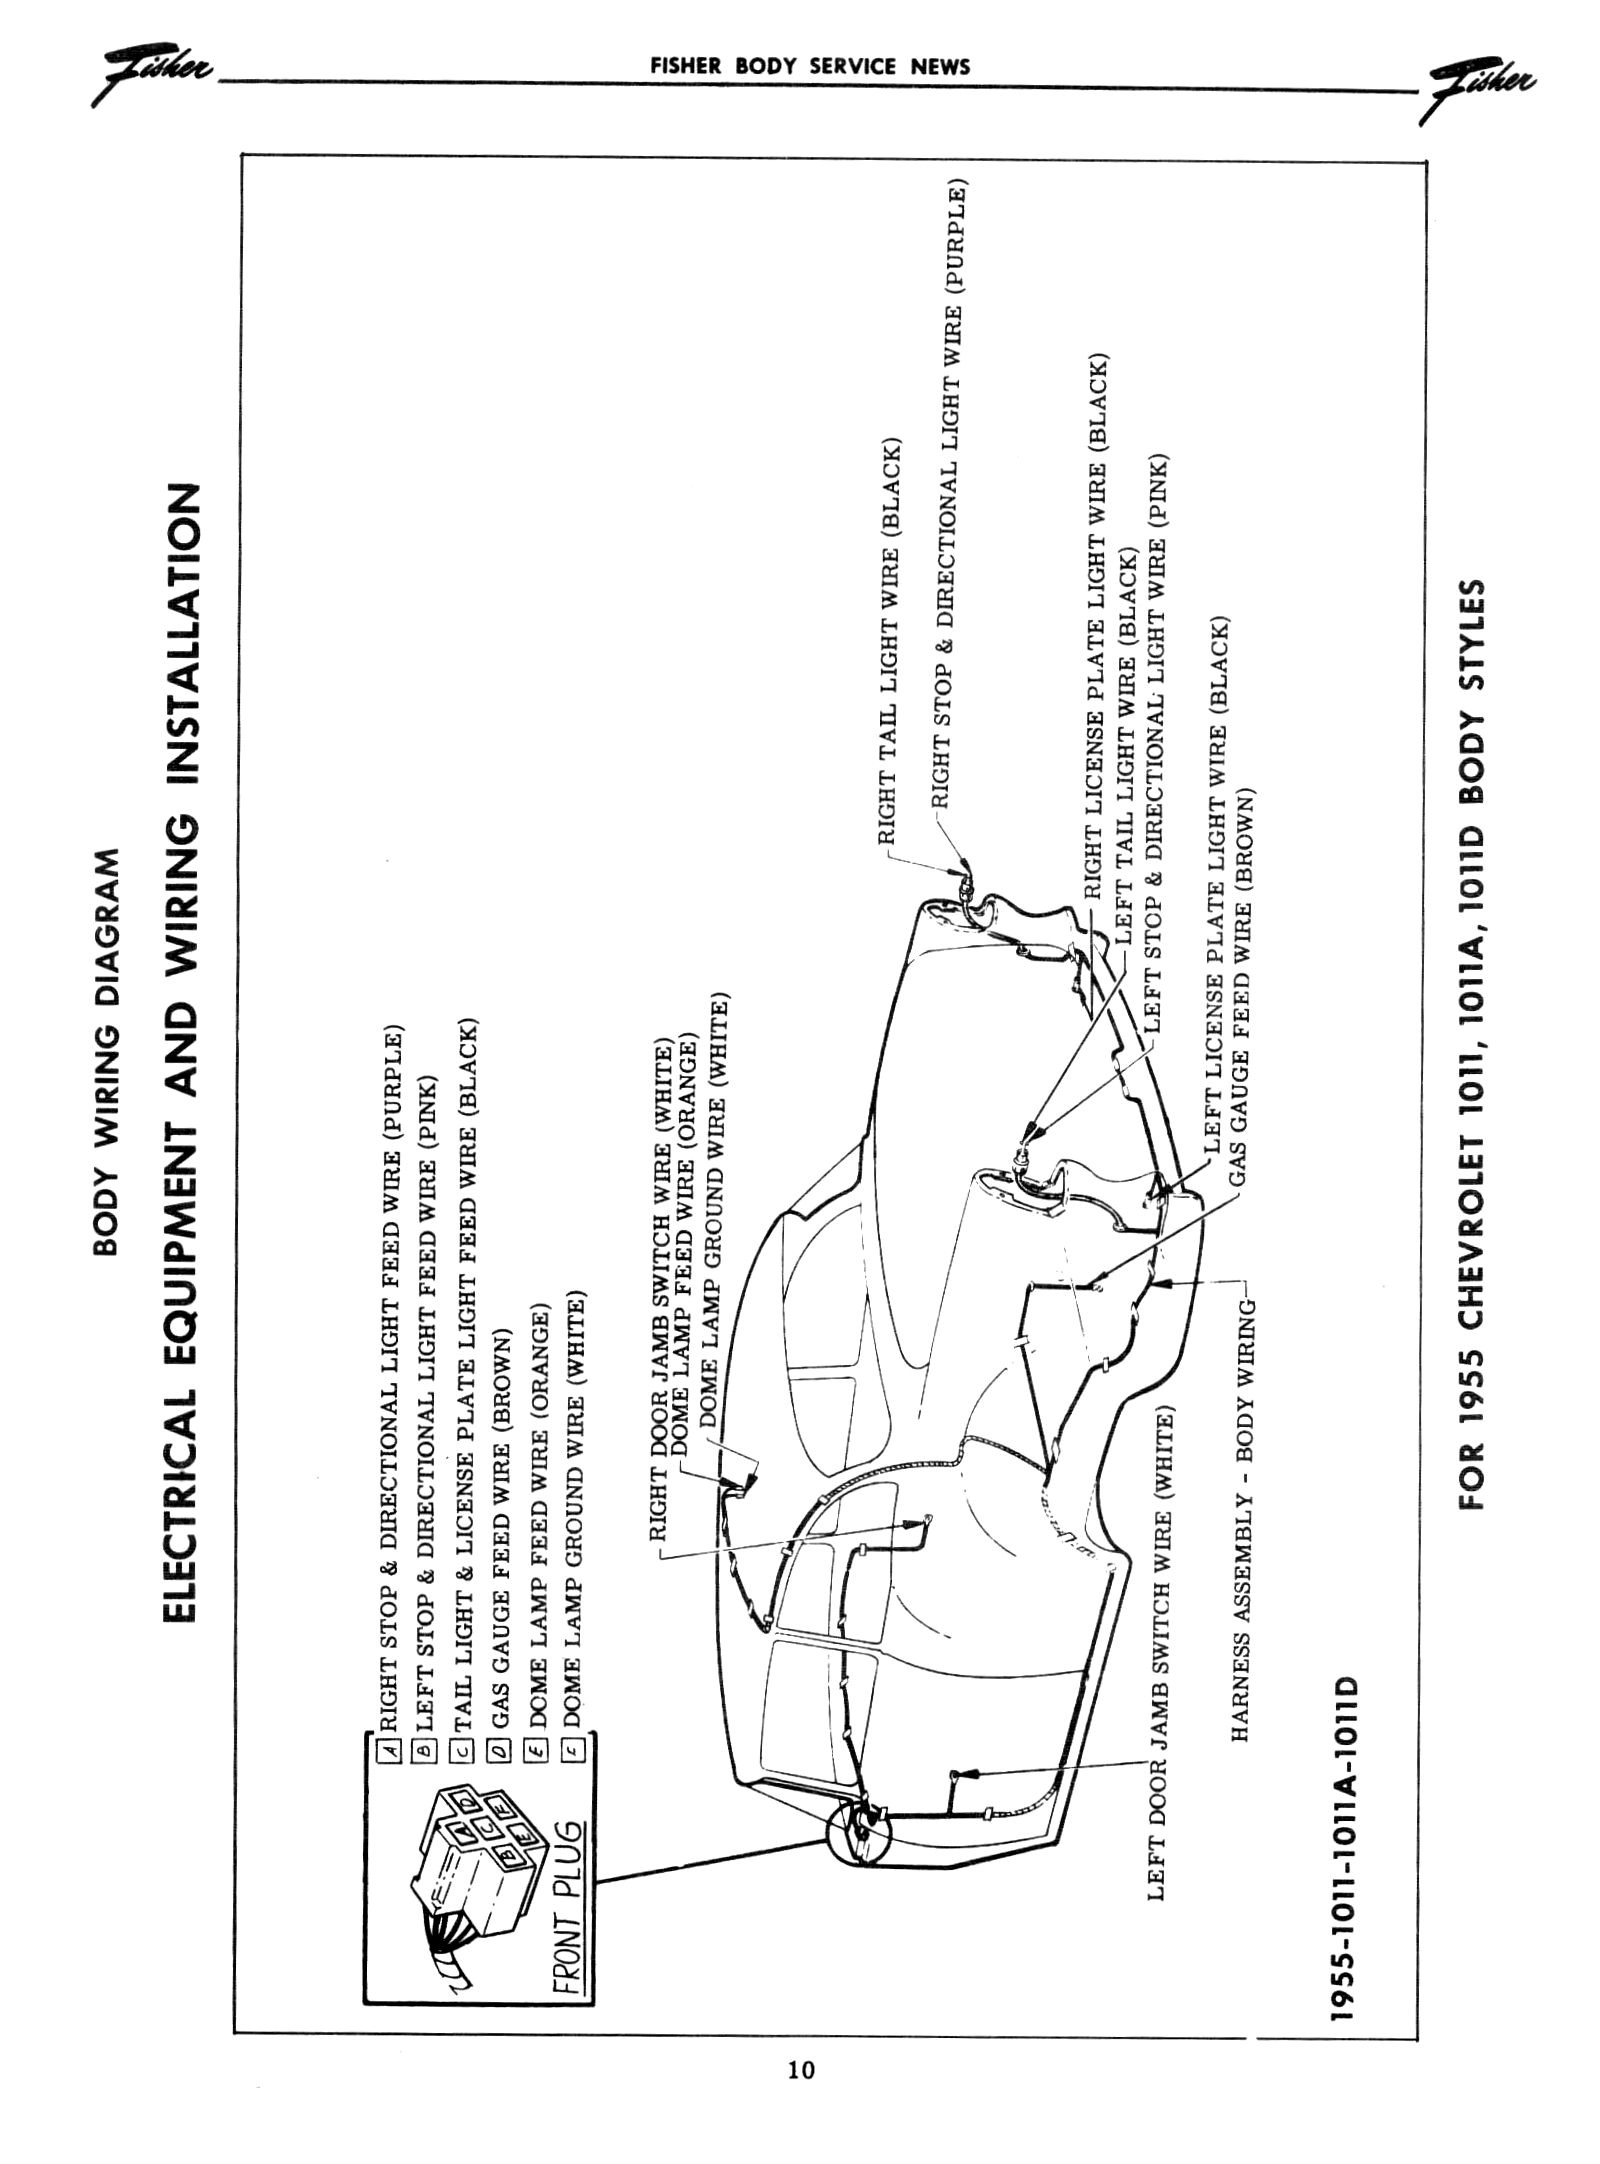 Chevy Wiring Diagrams - Dome Light Wiring Diagram